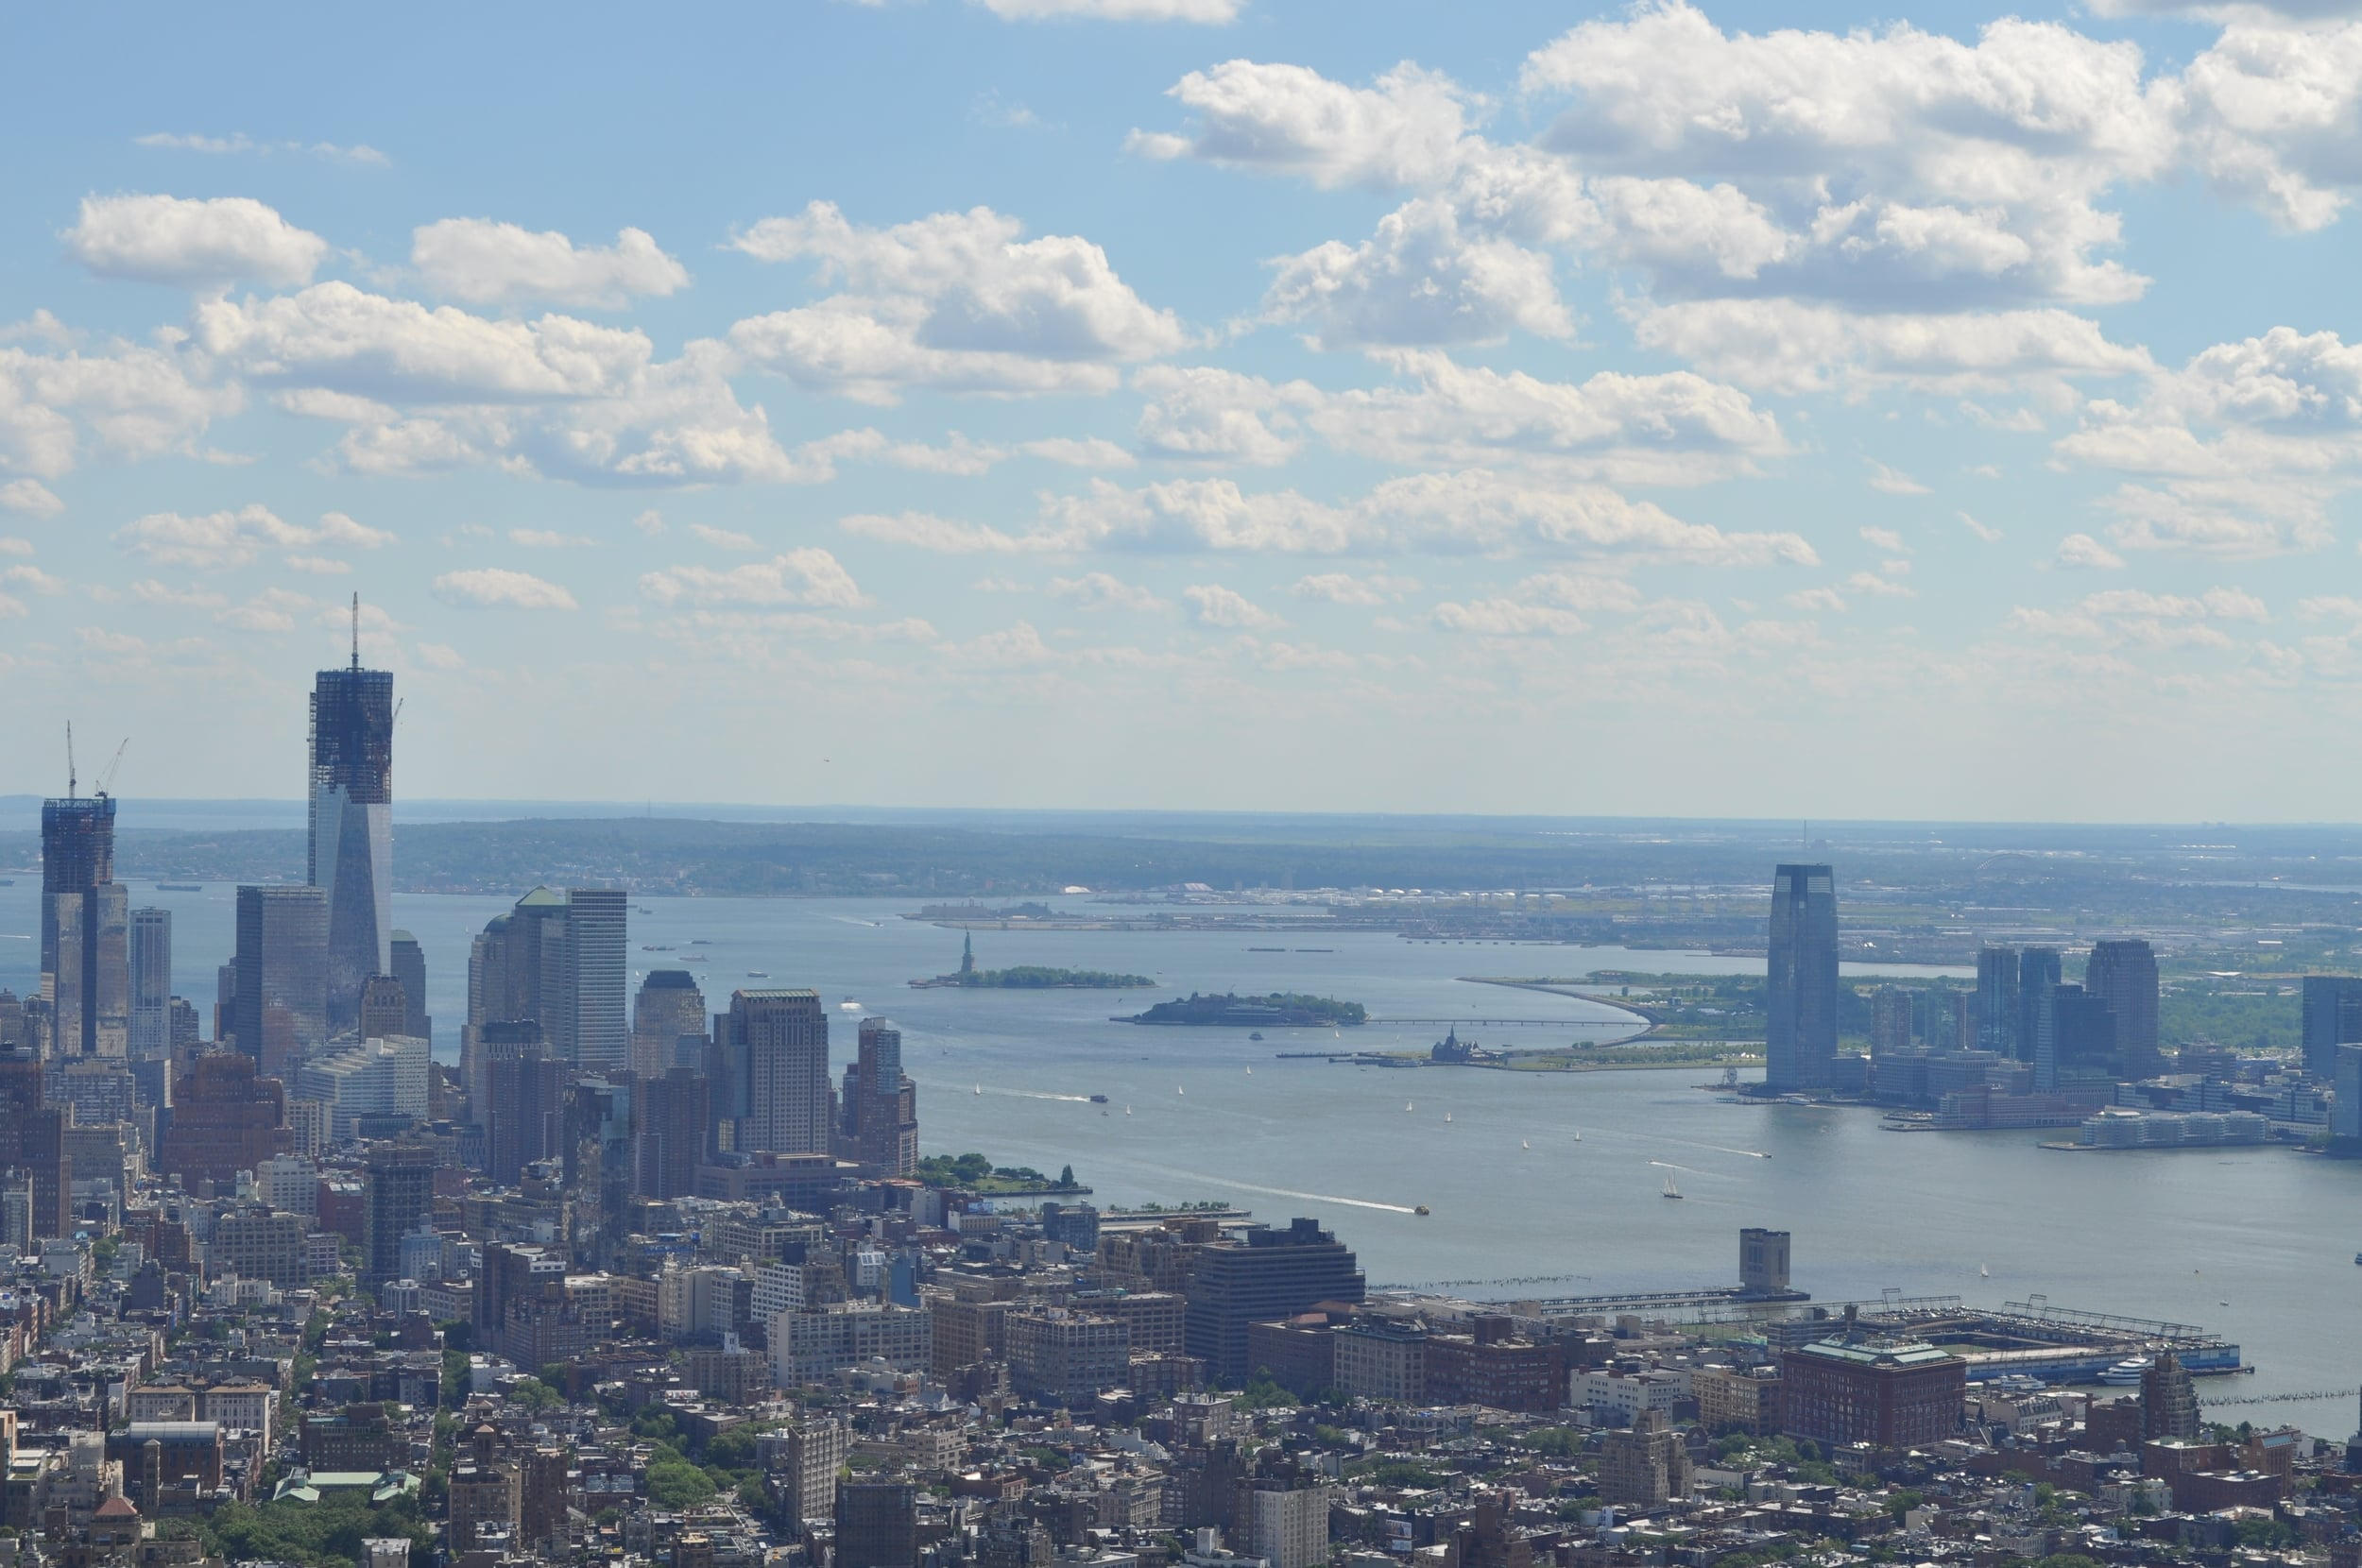 View from the Empire State. Photo: Pamy Rojas